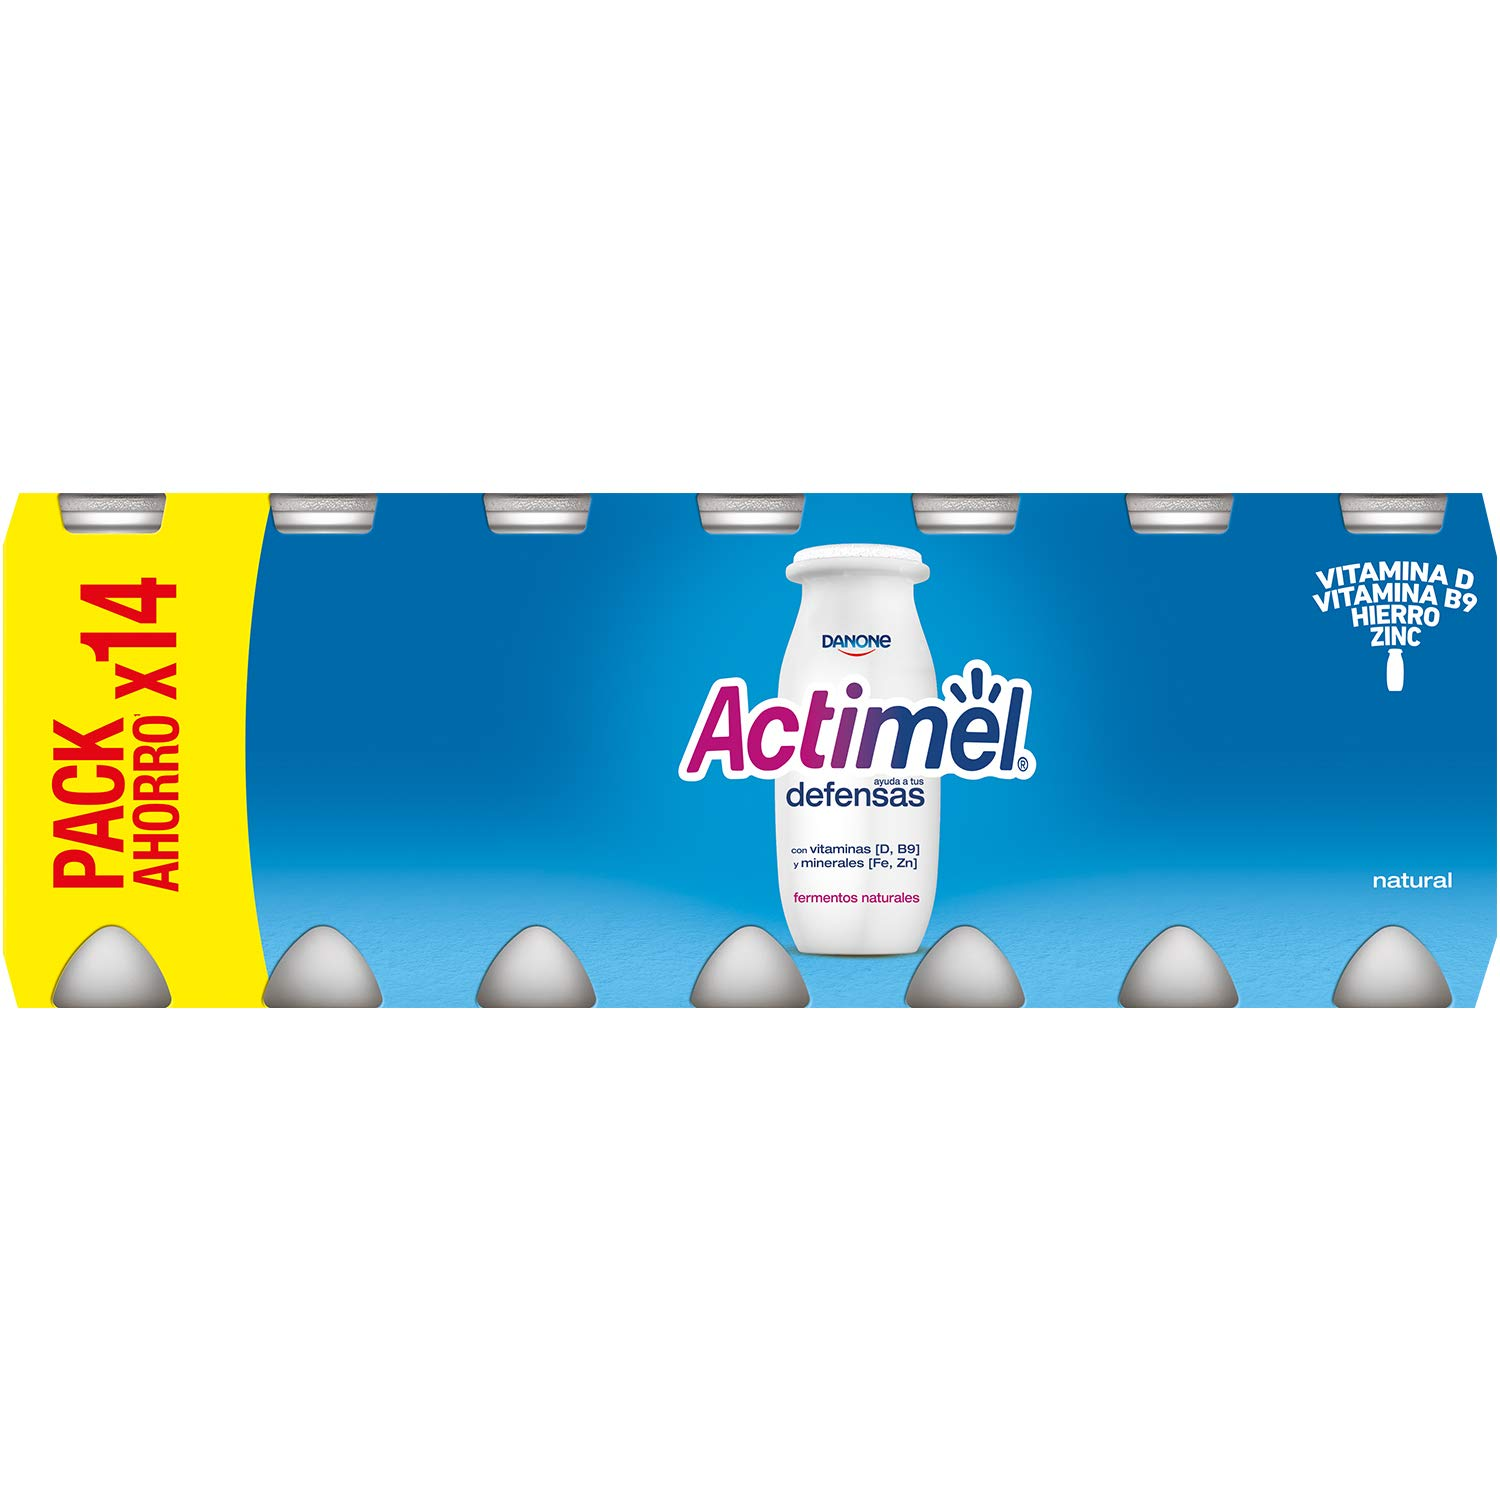 Actimel Natural - Paquete de 14 x 100 ml - Total: 1400 ml: Amazon.es: Alimentación y bebidas